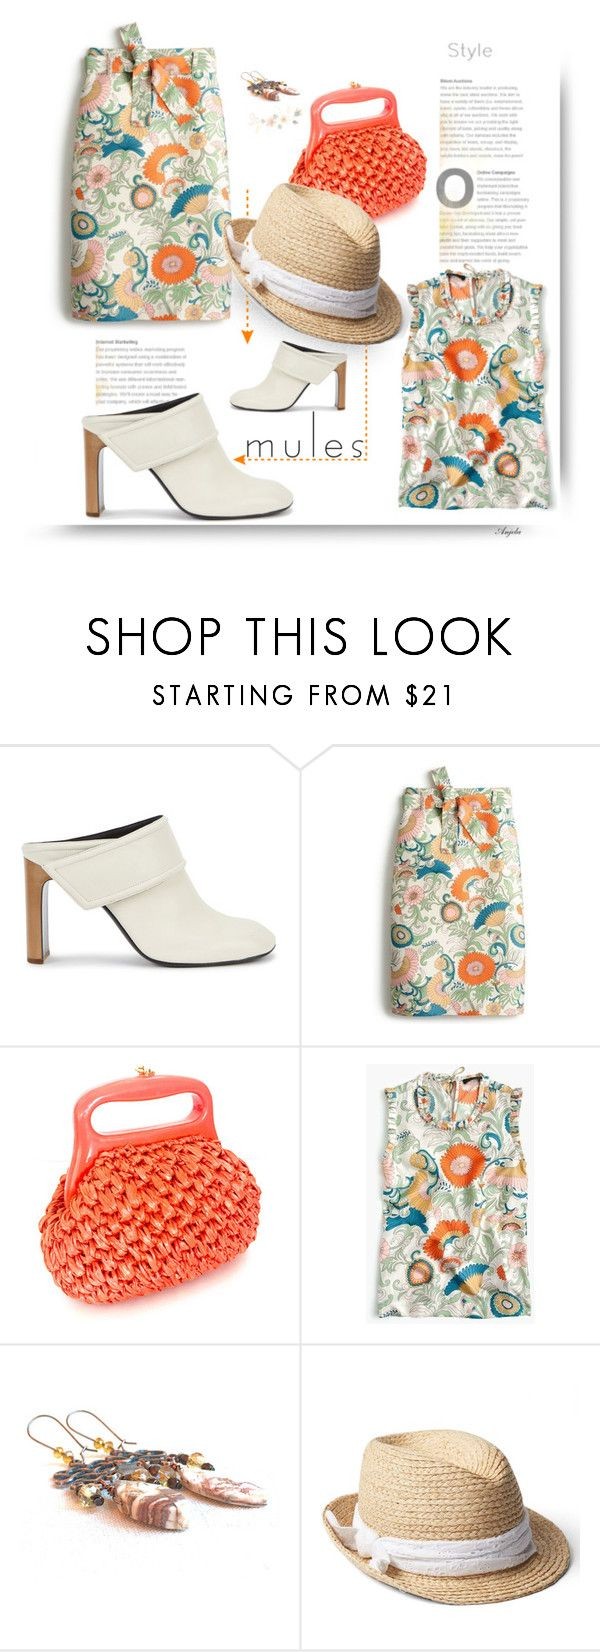 """""""Slip 'Em On Mules ... Walk the Walk"""" by anjelakewell ❤ liked on Polyvore featuring rag & bone, J.Crew, Trilogy, Gap, mules and polyvorecontest"""